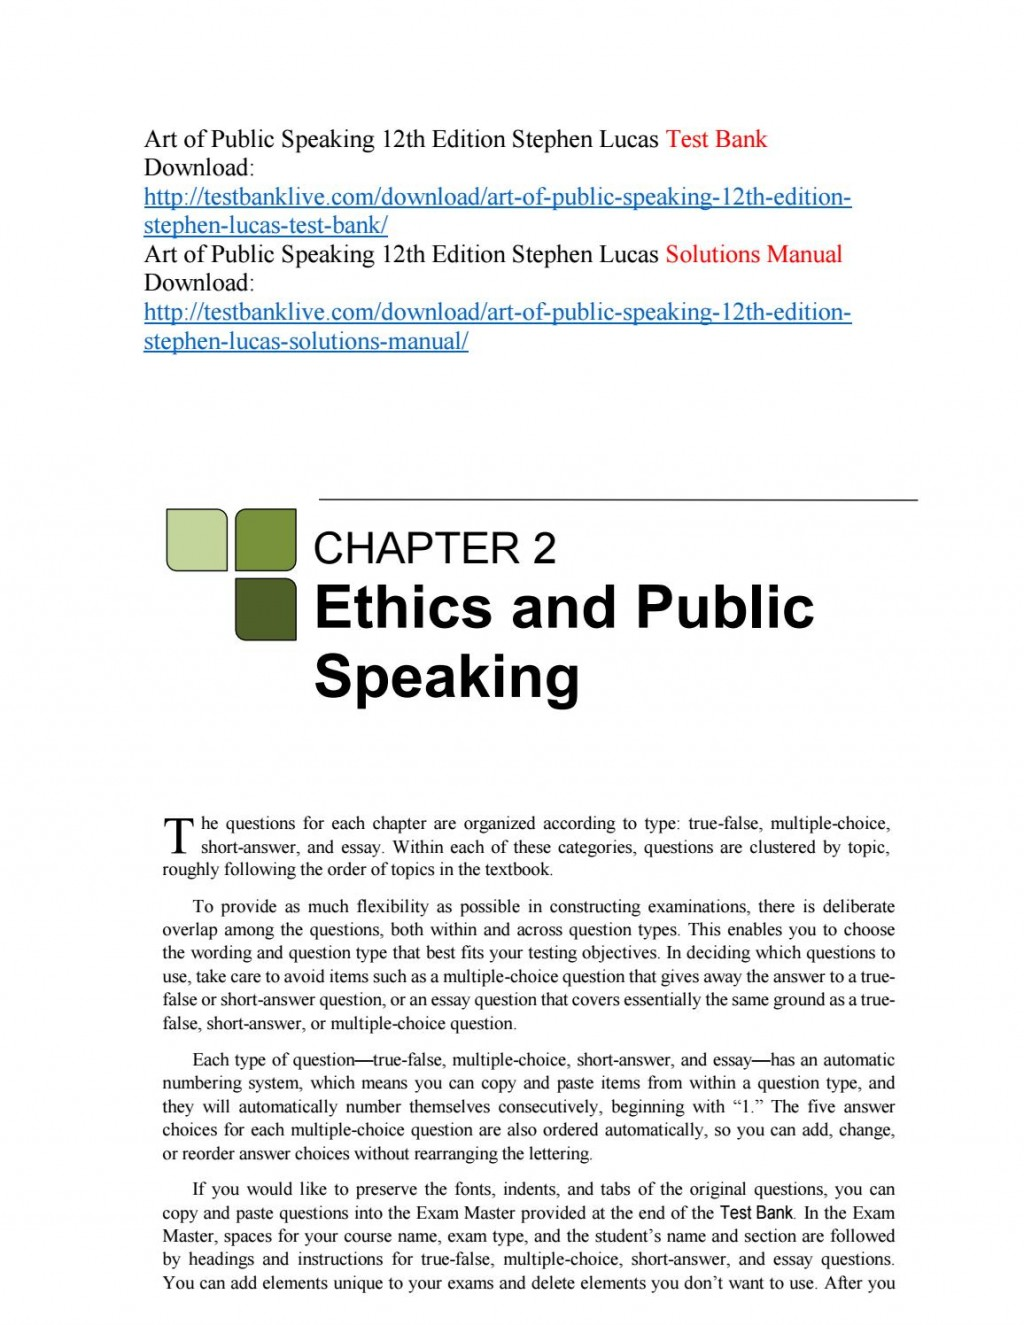 009 Public Speaking Essay Example Page 1 Stunning Topics Introduction Large